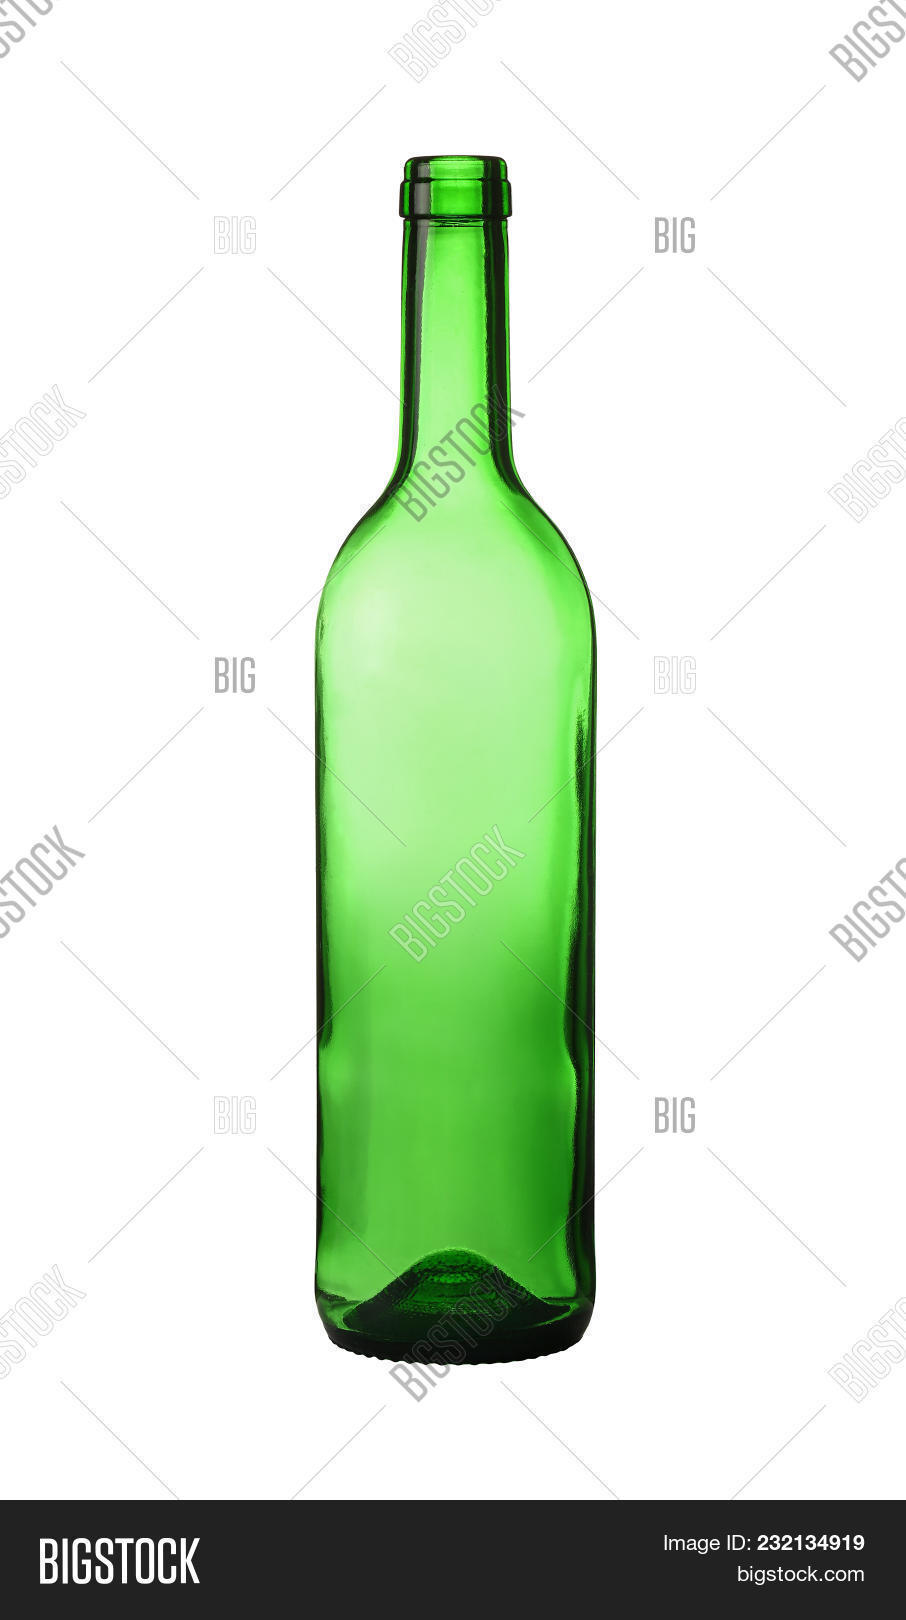 Close Up One Unlabeled Empty Green Glass Wine Bottle Isolated On White Background Low Angle  sc 1 st  Bigstock & Close One Unlabeled Image u0026 Photo (Free Trial) | Bigstock